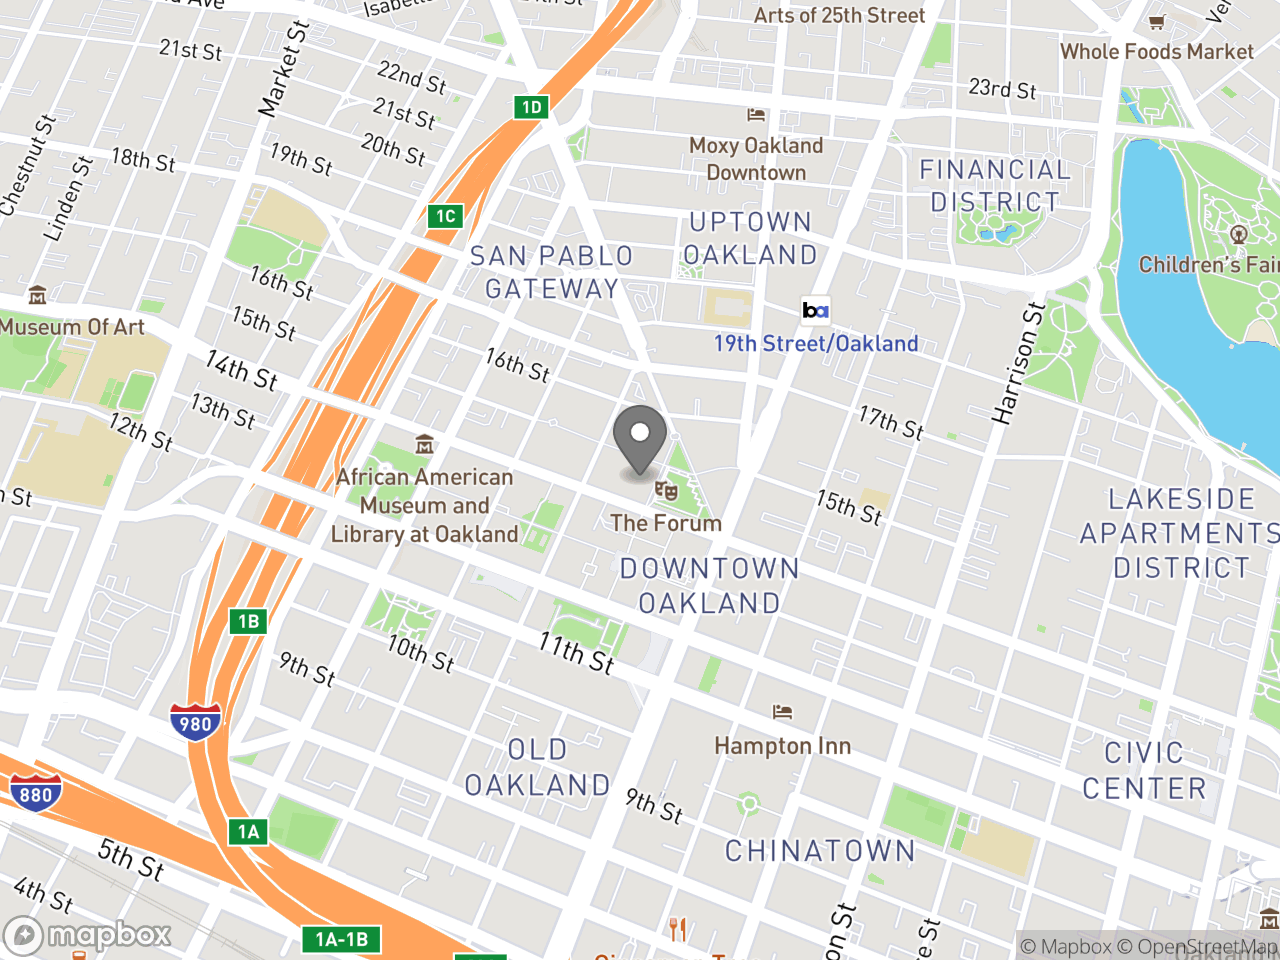 Map location for Police Commission October 11, 2018, located at 1 Frank H Ogawa Plaza in Oakland, CA 94612